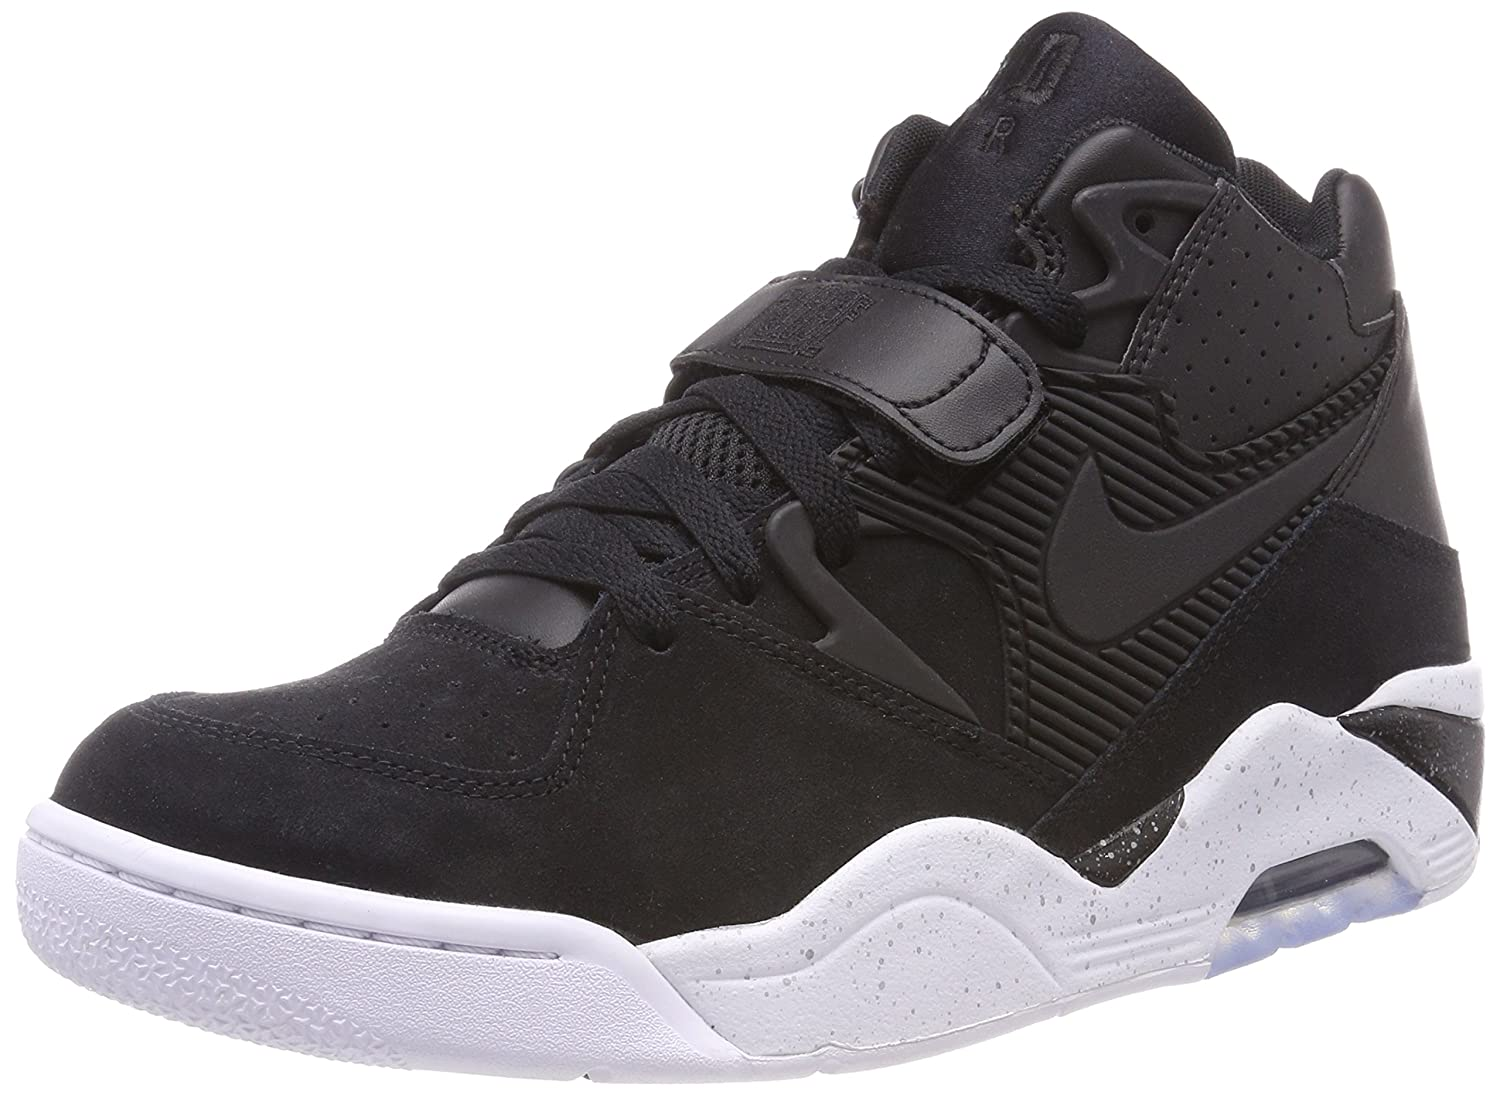 huge selection of 3be6a a3b4a Amazon.com | Nike Air Force 180 Men's Basketball Shoes Black/Black-White  310095-003 | Basketball